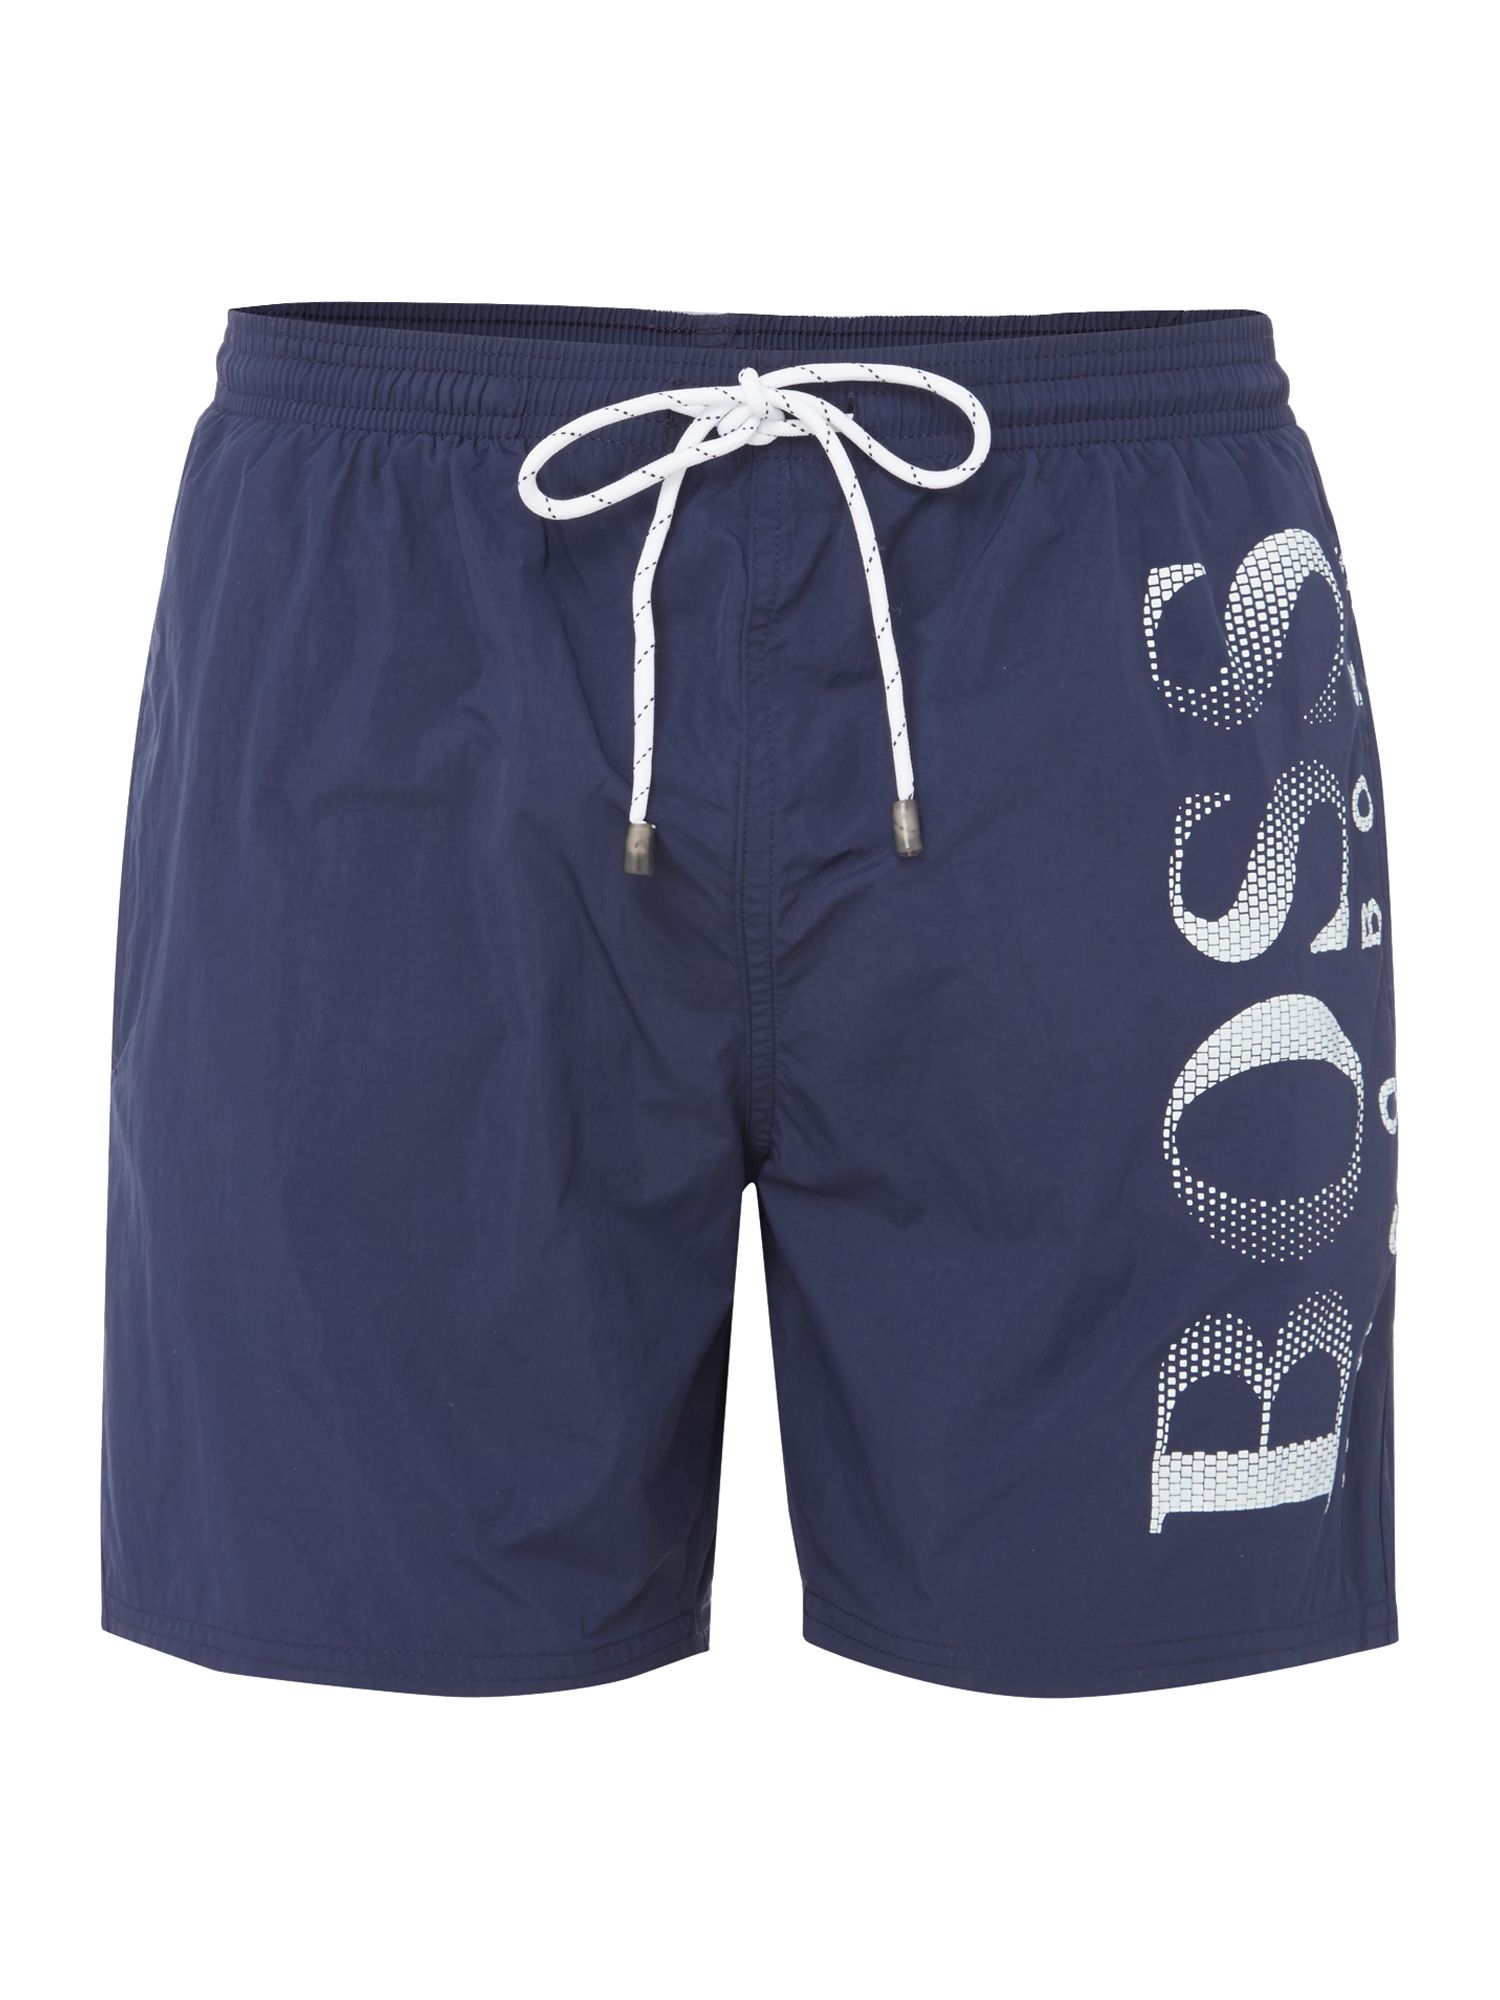 Men's Hugo Boss Octopus Swim Shorts, Blue